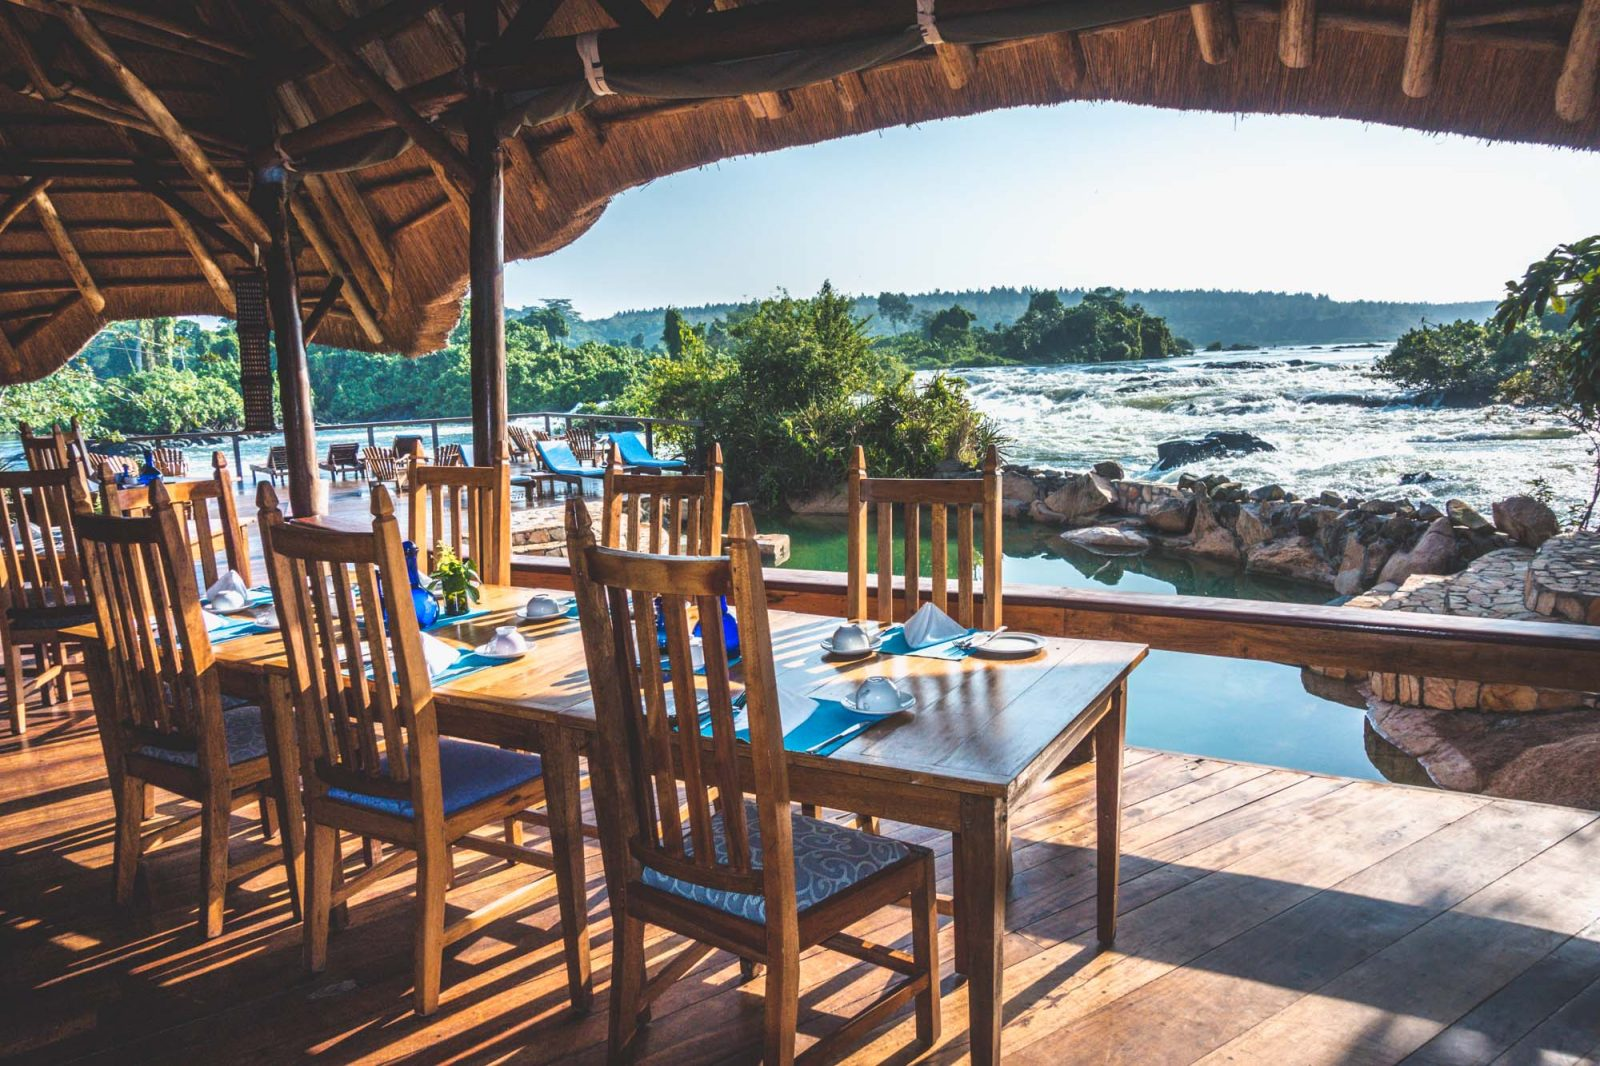 Restaurant at the Wildwaters Lodge